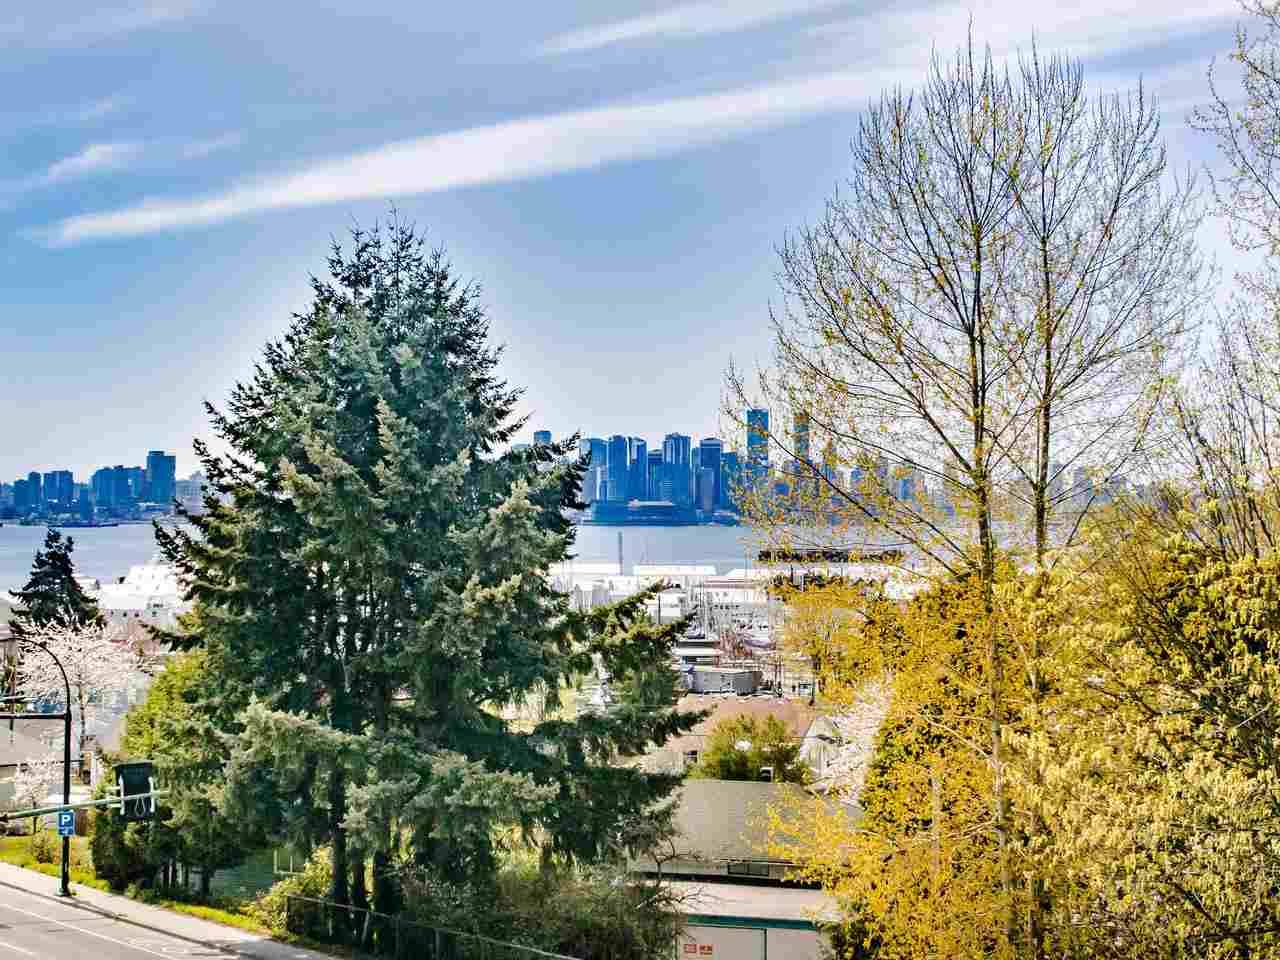 Buliding: 212 Forbes Avenue, North Vancouver, BC